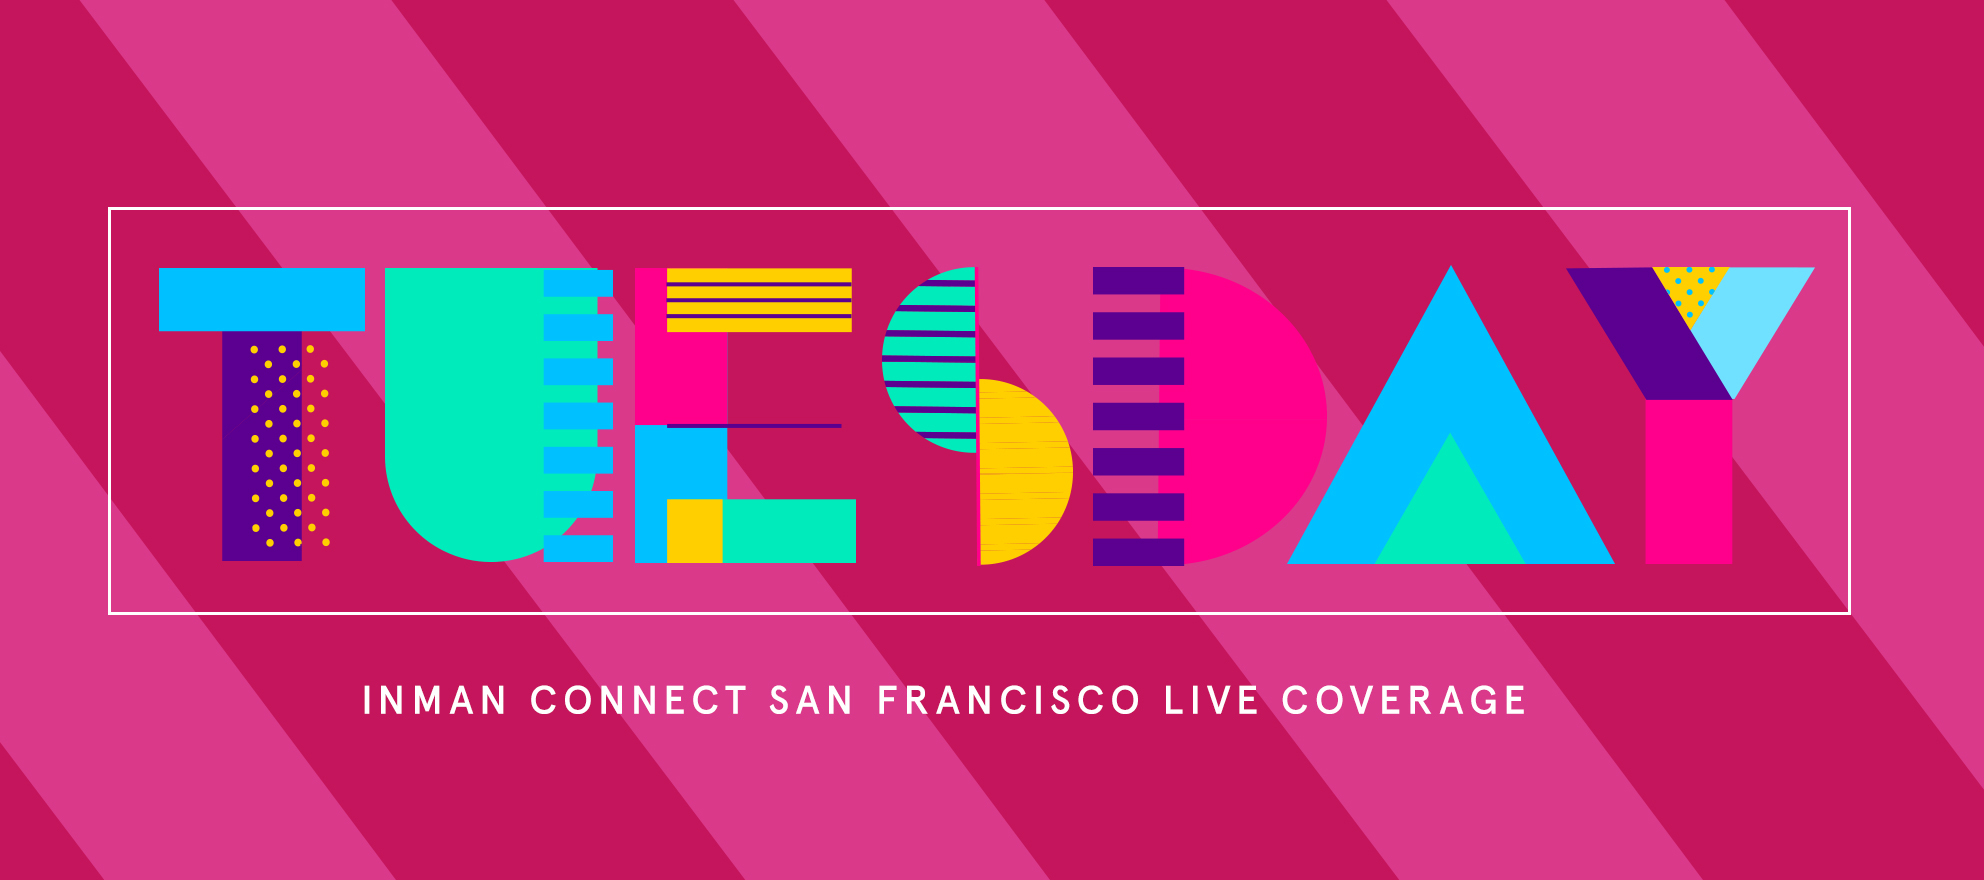 Inman Connect San Francisco Live Coverage: Tuesday